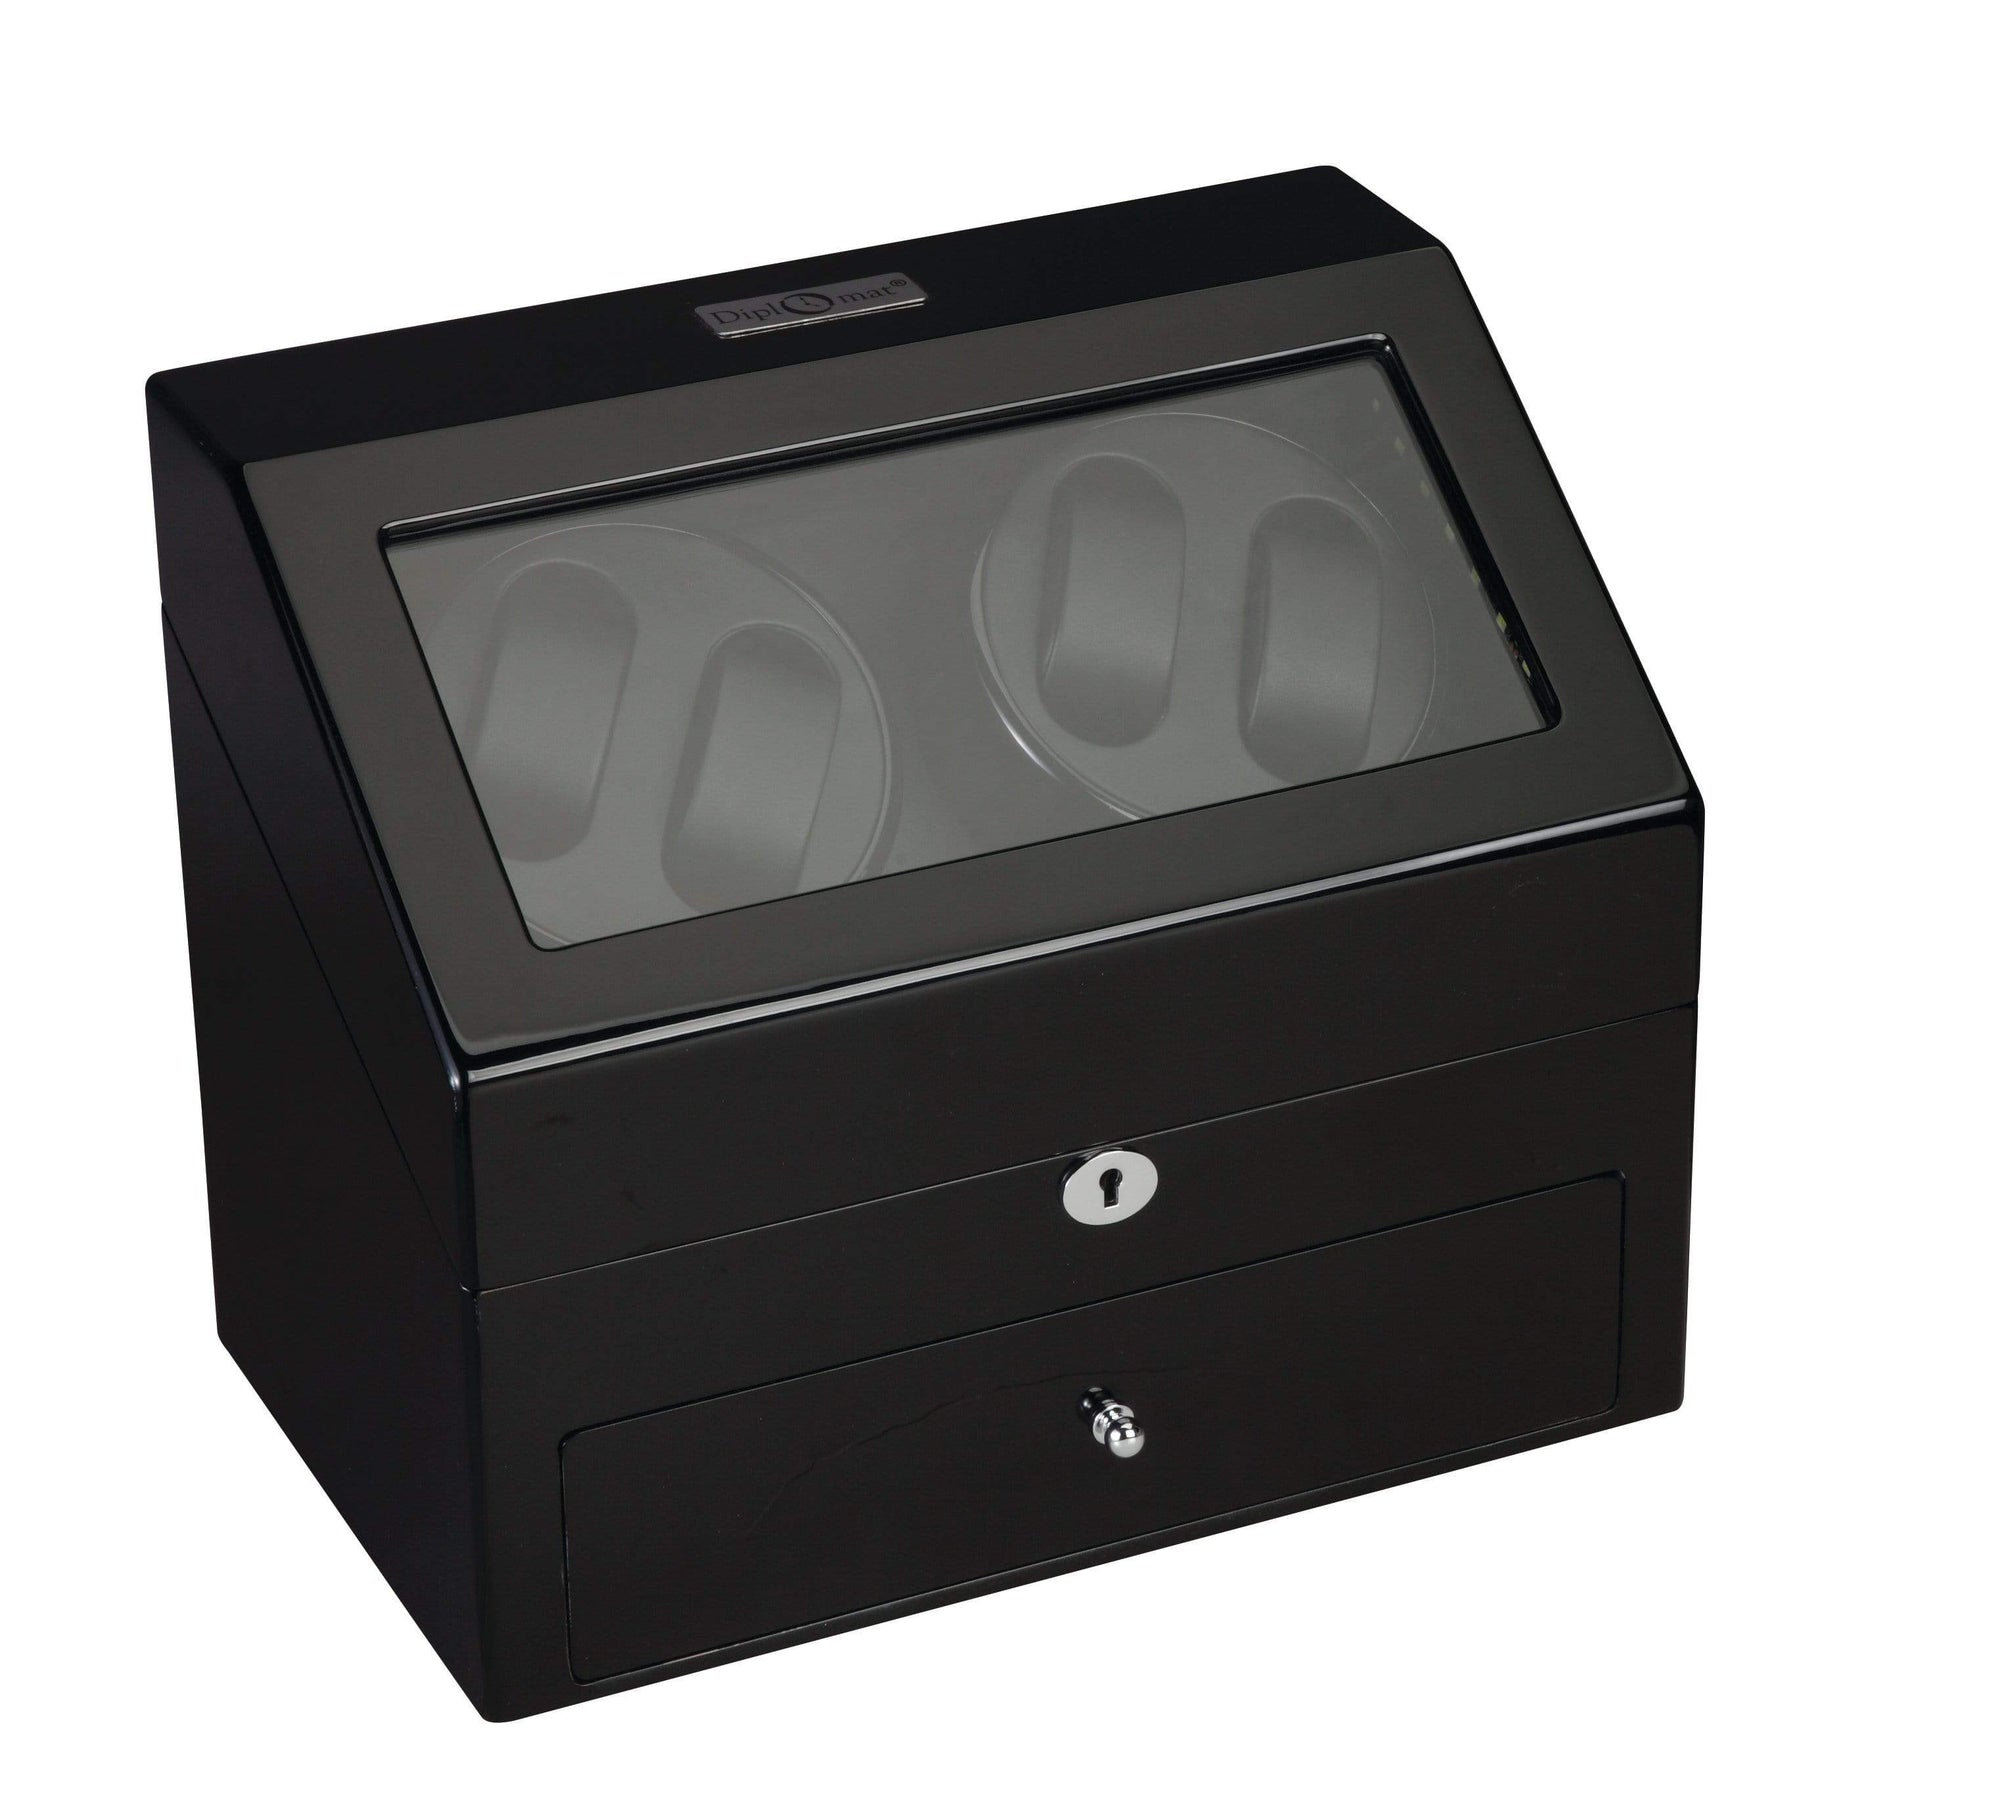 Diplomat Phantom LED Lit Black Wood Finish Quad Watch Winder with Black Interior and Additional Storage for 4 Watches and Smart Internal Bi-Directional Timer Control Armadillo Safe and Vault